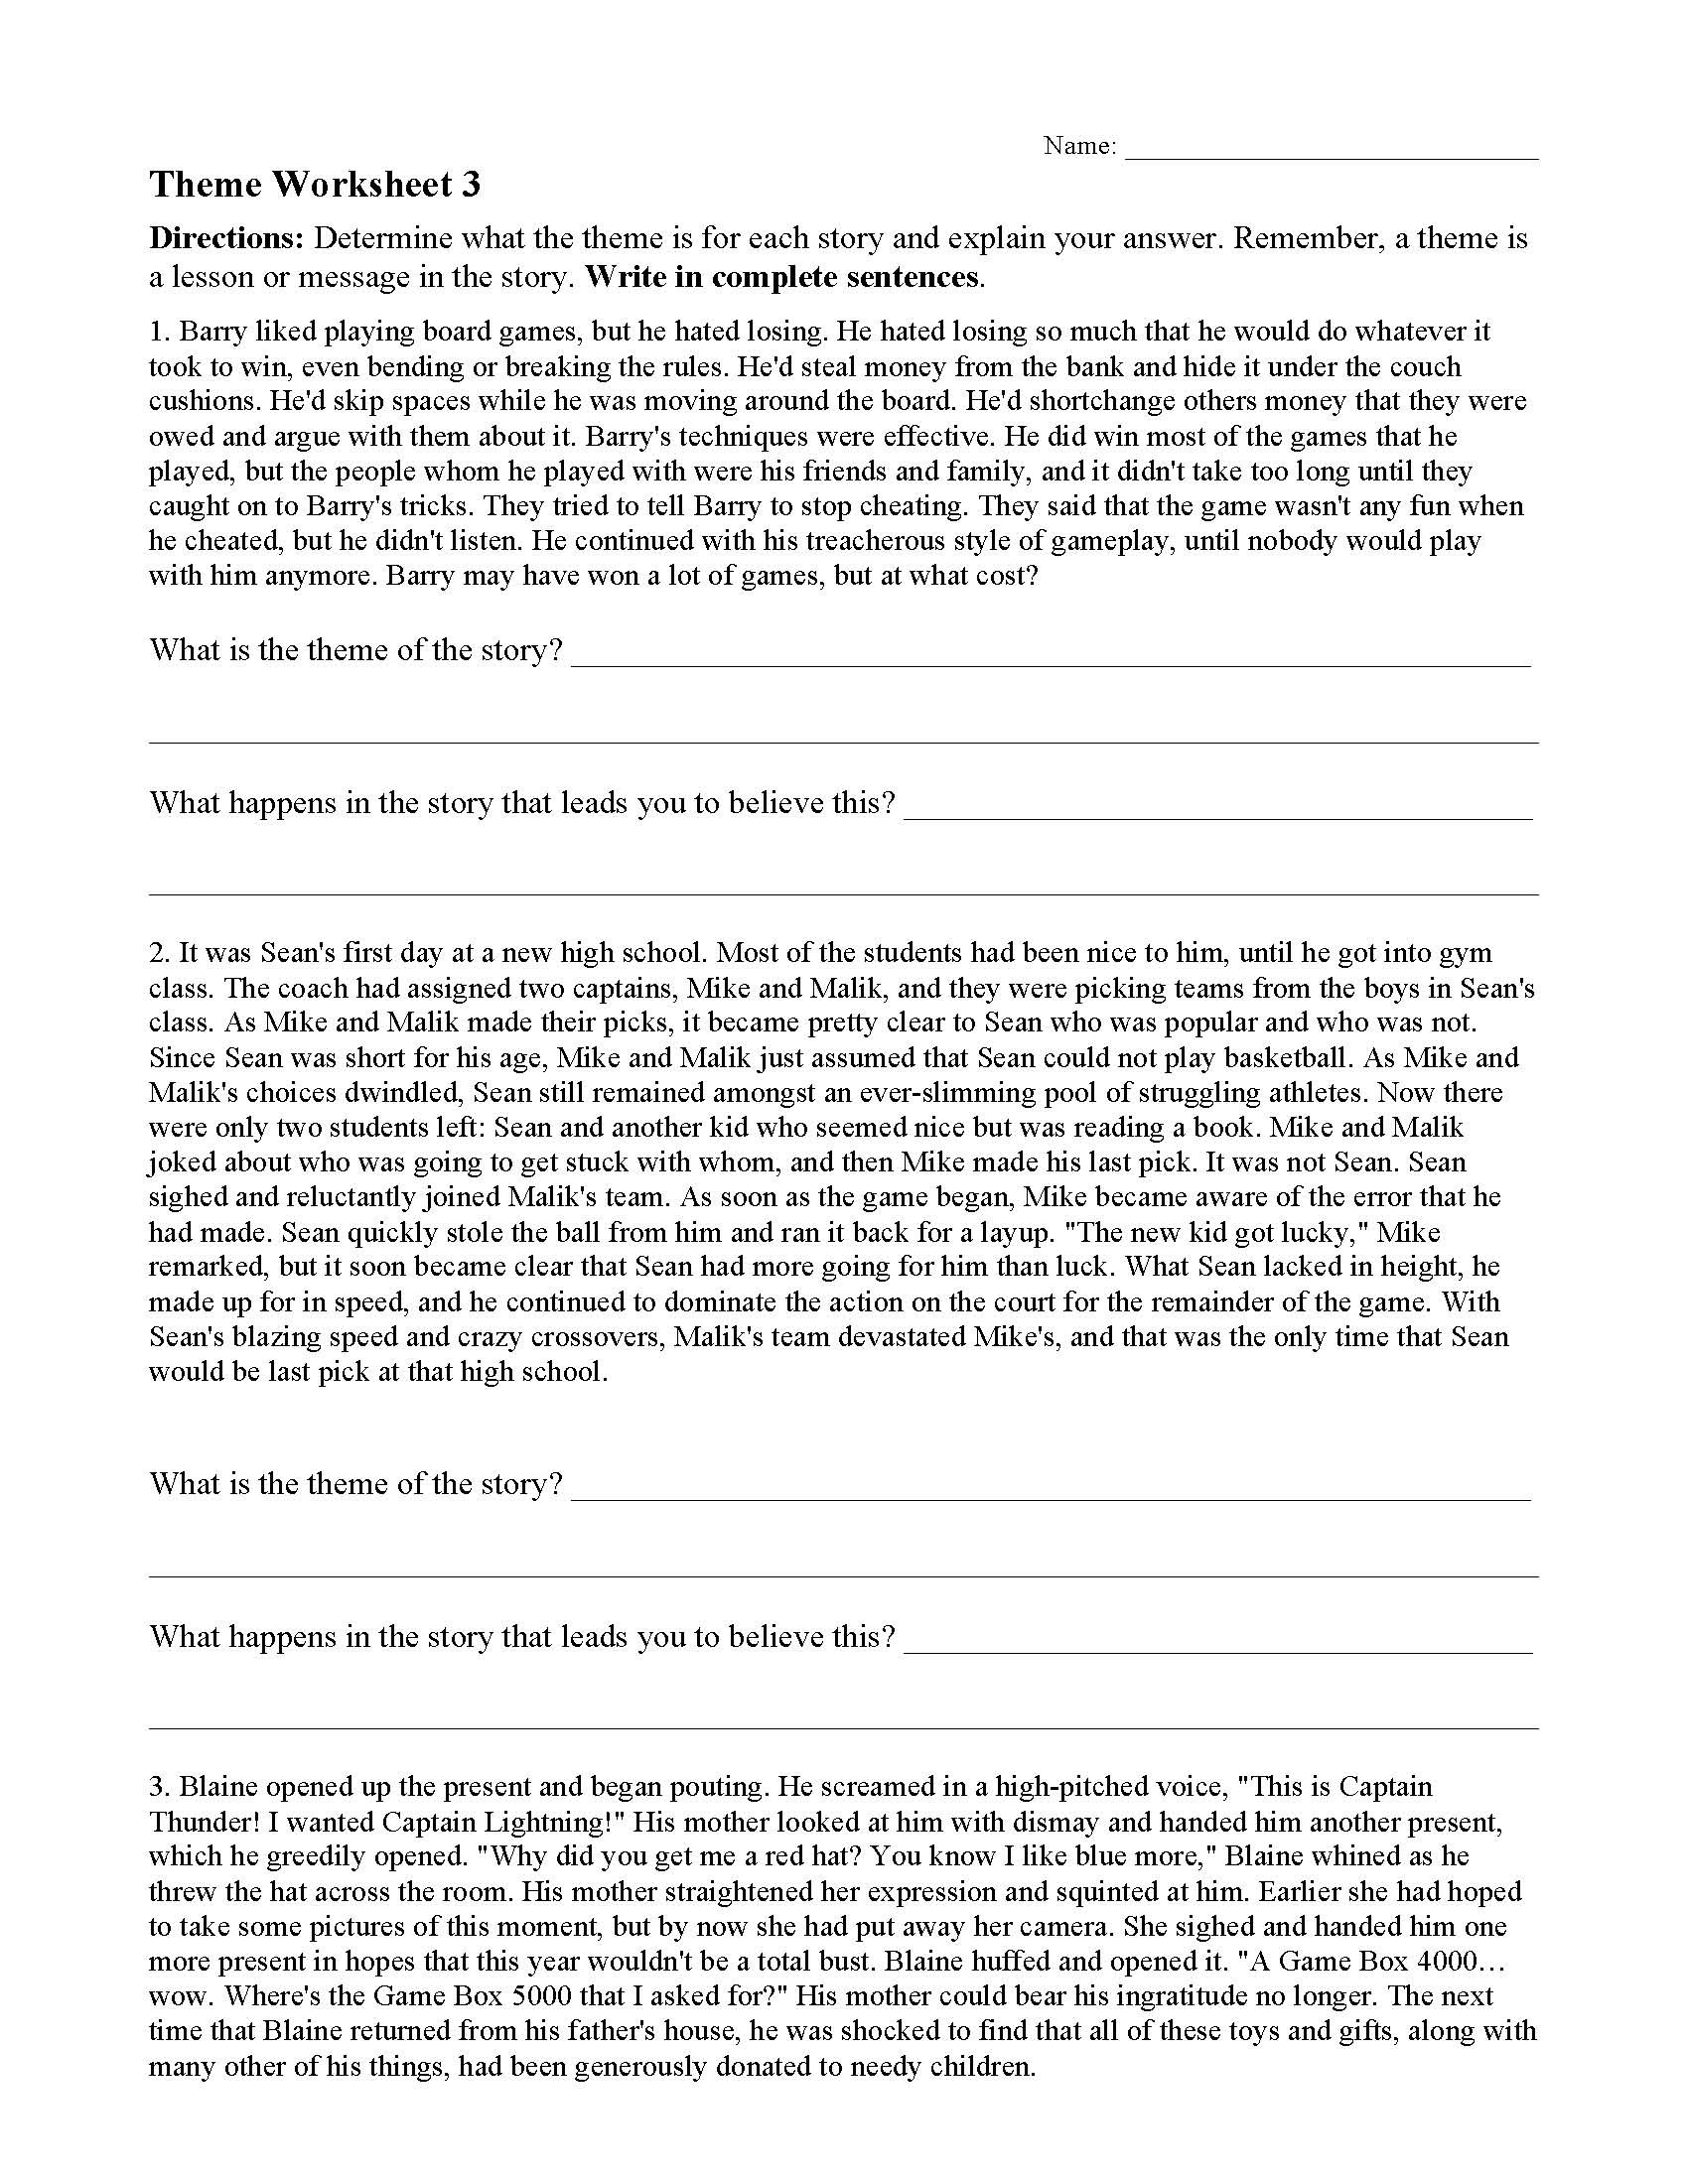 Theme Worksheets Grade 5 theme or Author S Message Worksheets